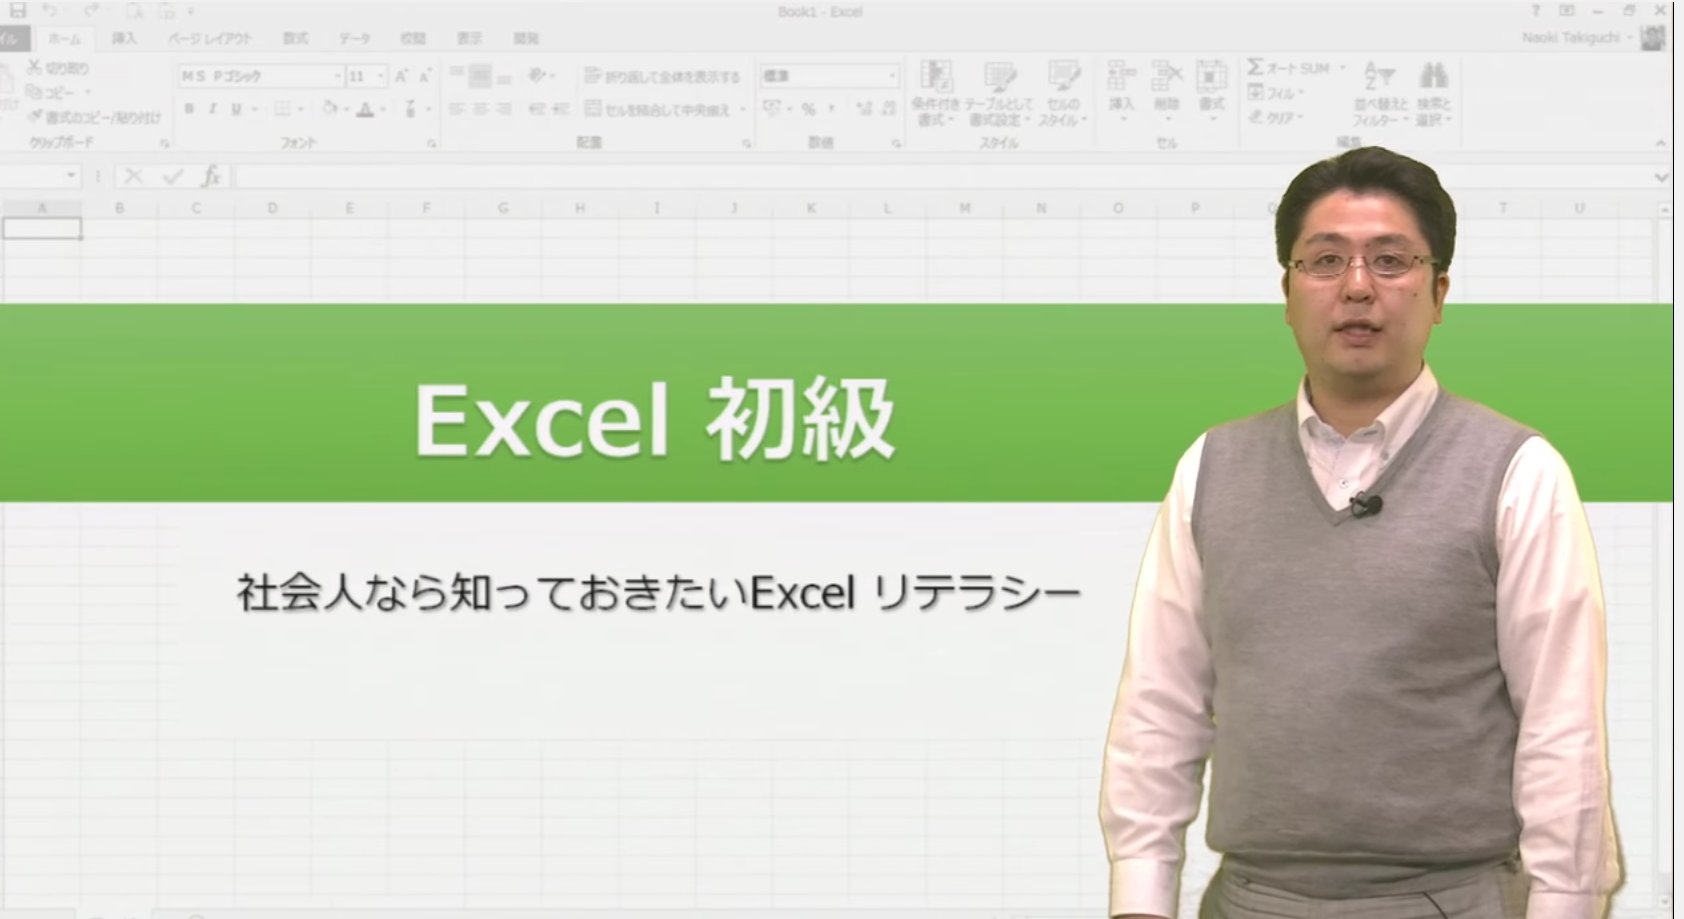 【EXCEL初級】社会人なら知っておきたいEXCELリテラシー